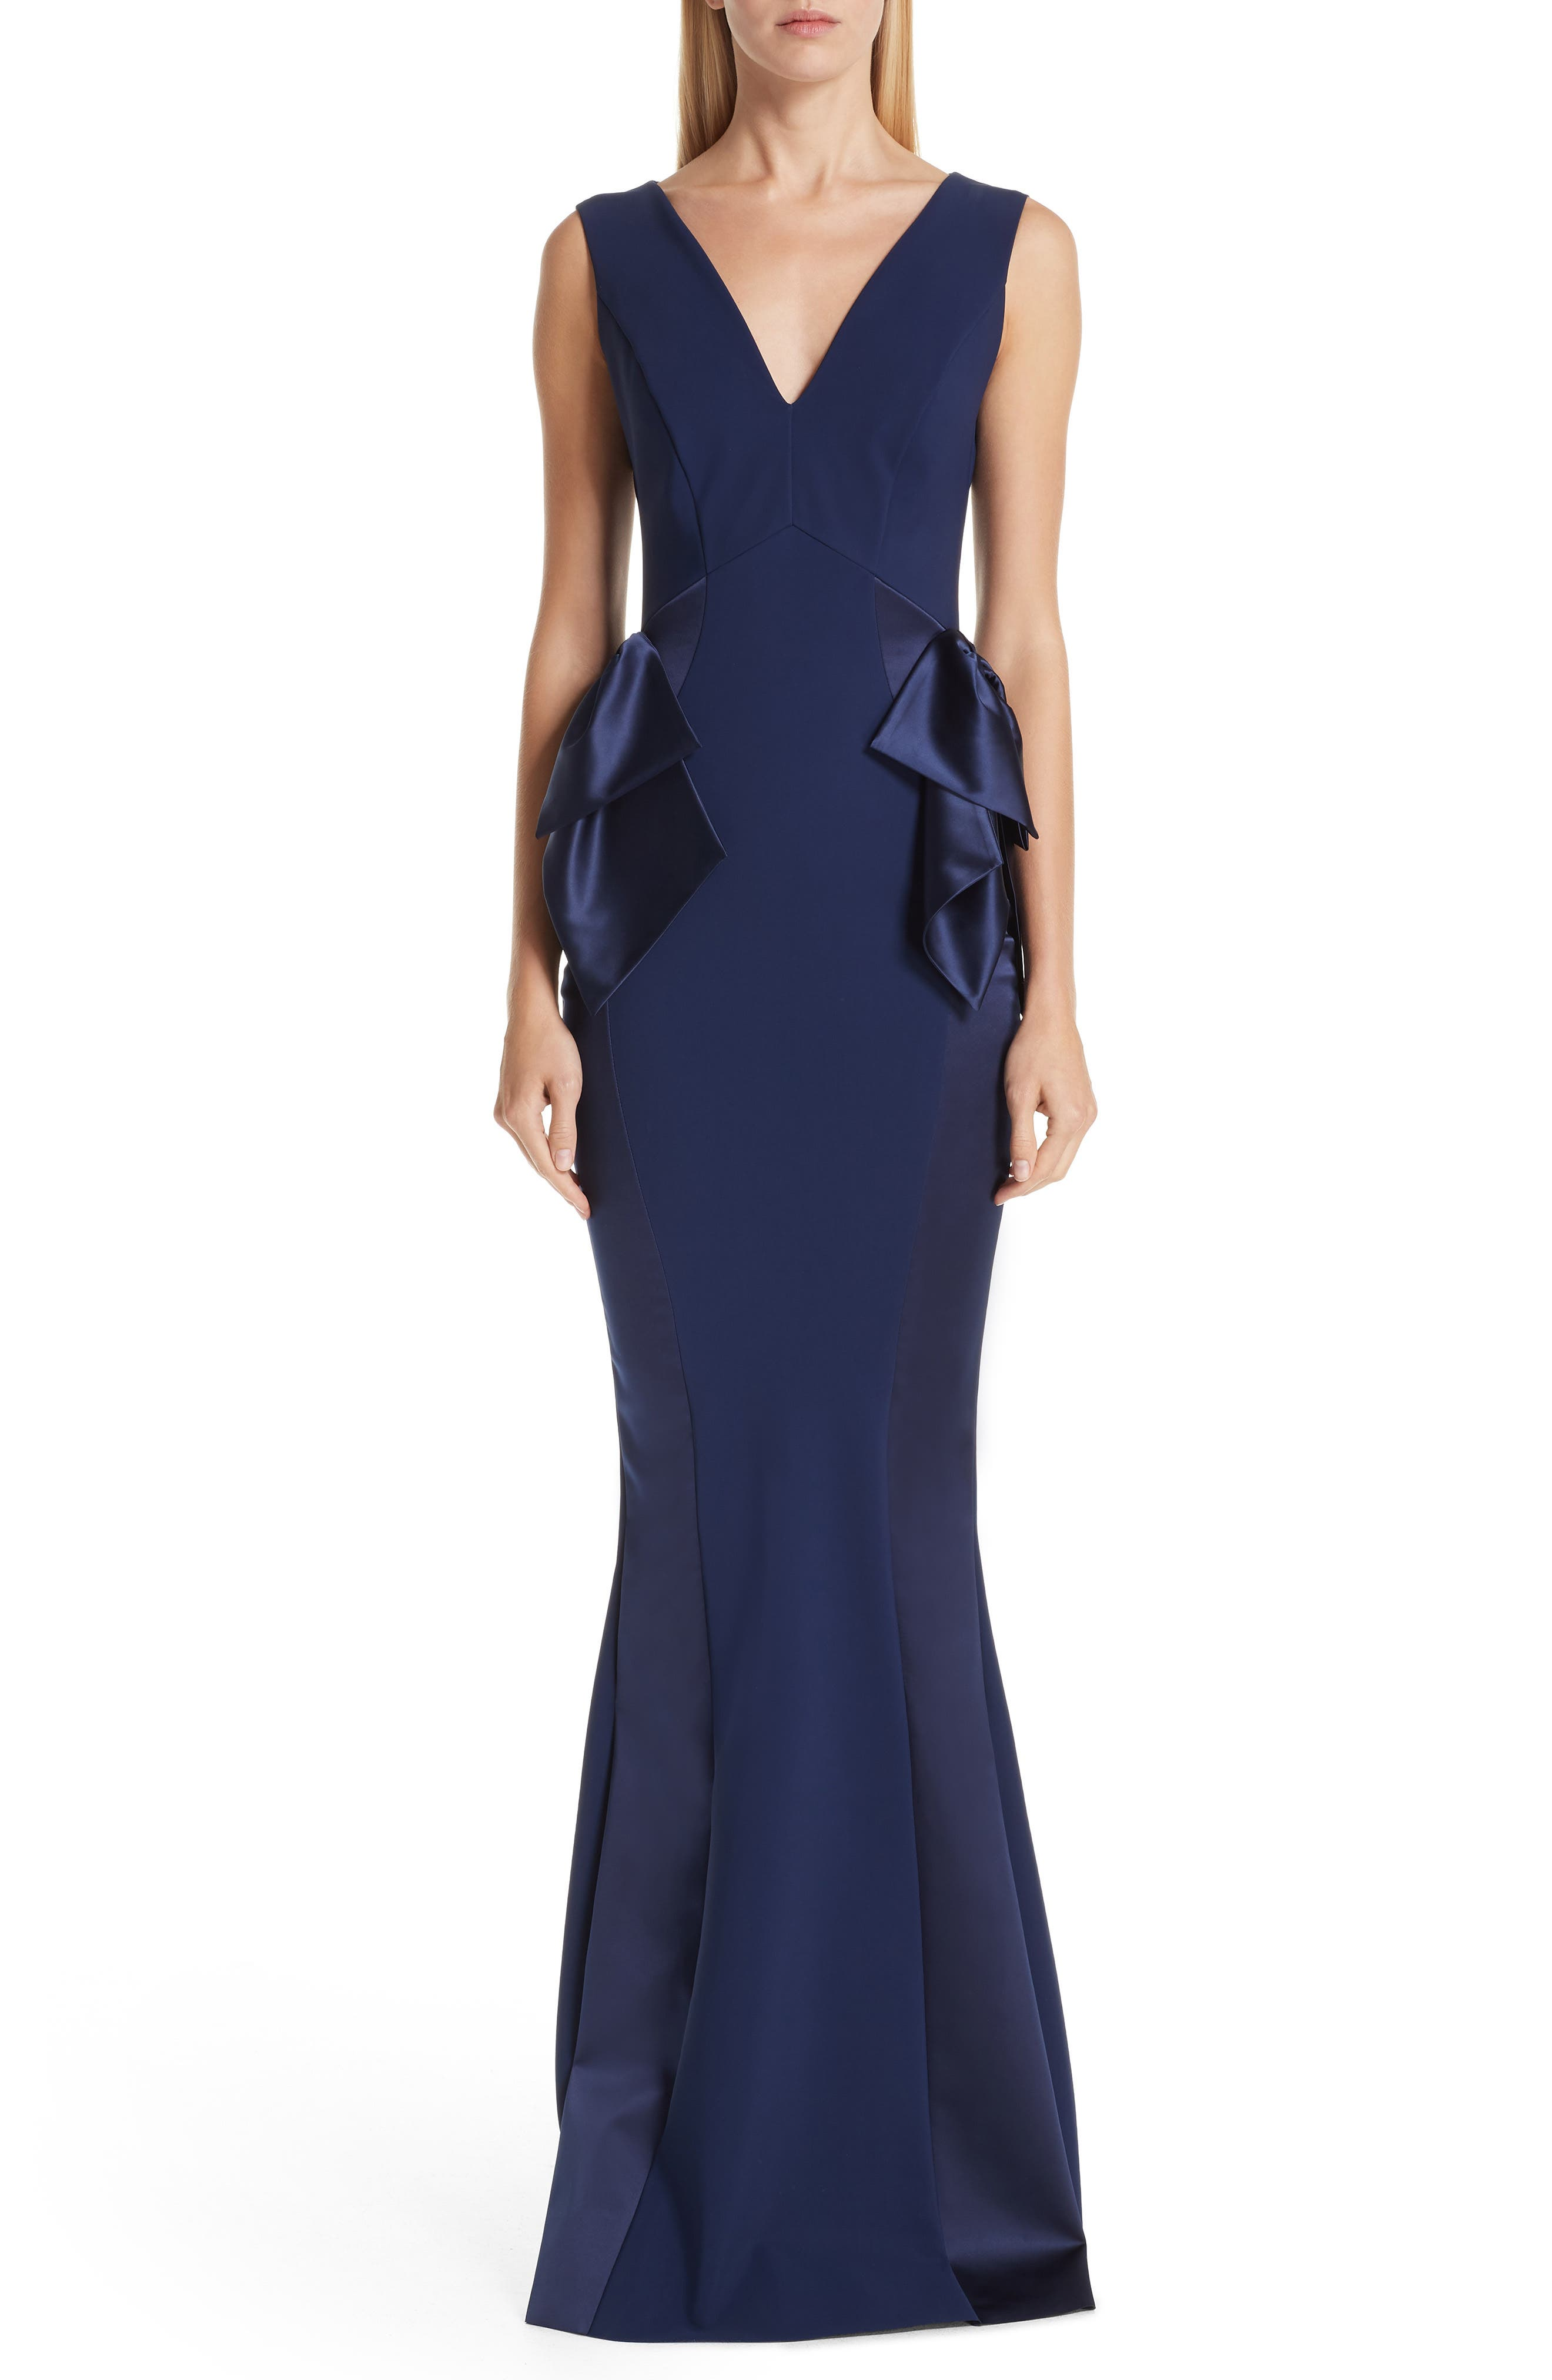 Macaria Satin Bow Trumpet Gown,                         Main,                         color, BLUE NOTTE